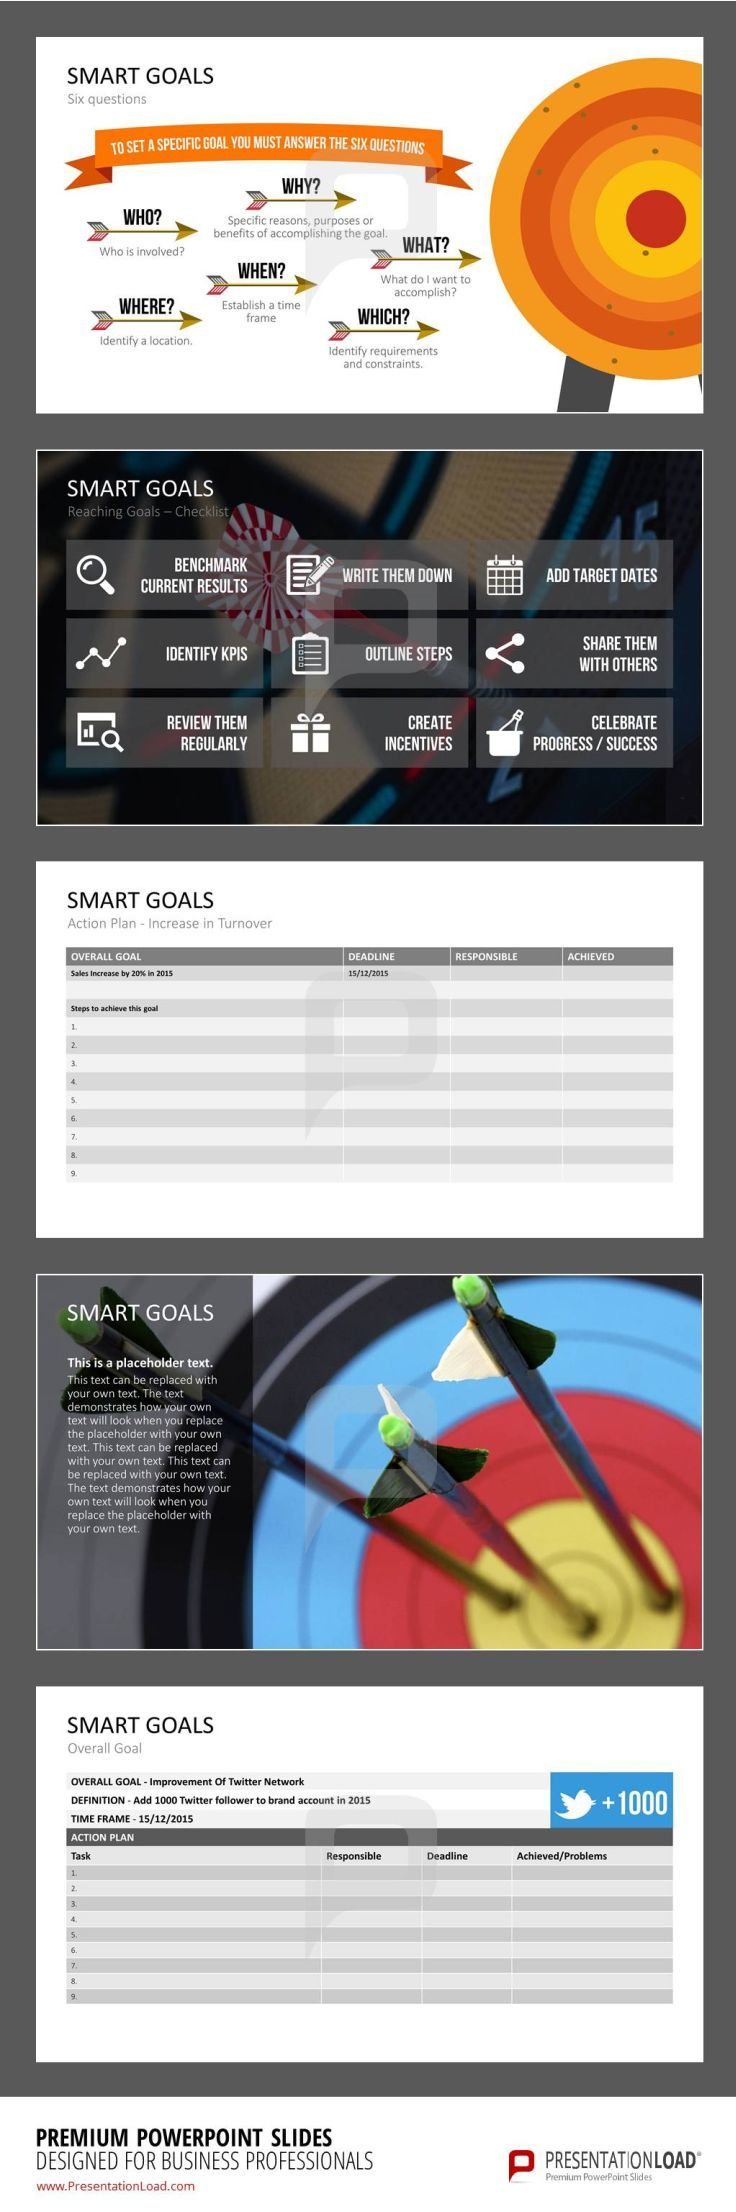 70 best smart goals powerpoint templates images on pinterest smart goals smart goal templates includes definitions work sheets and checklists for a successful project planning smart goals define business goals alramifo Choice Image